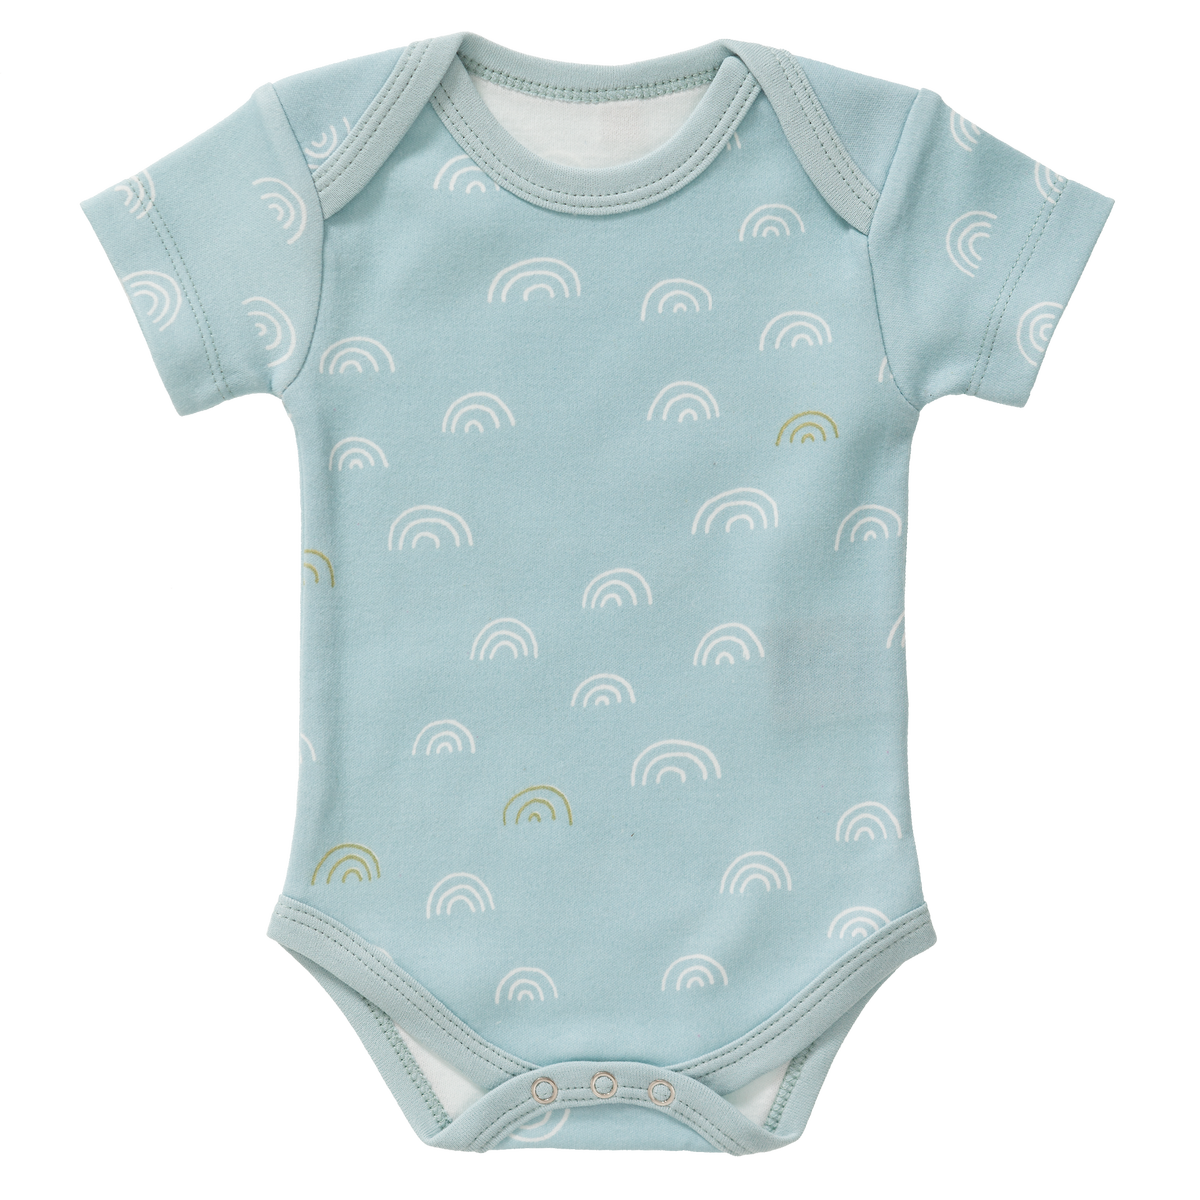 Fresk Organic - Body Short Sleeve Rainbow Ether Blue Size: 0‐3 m ,3-6 m and 6-12 m